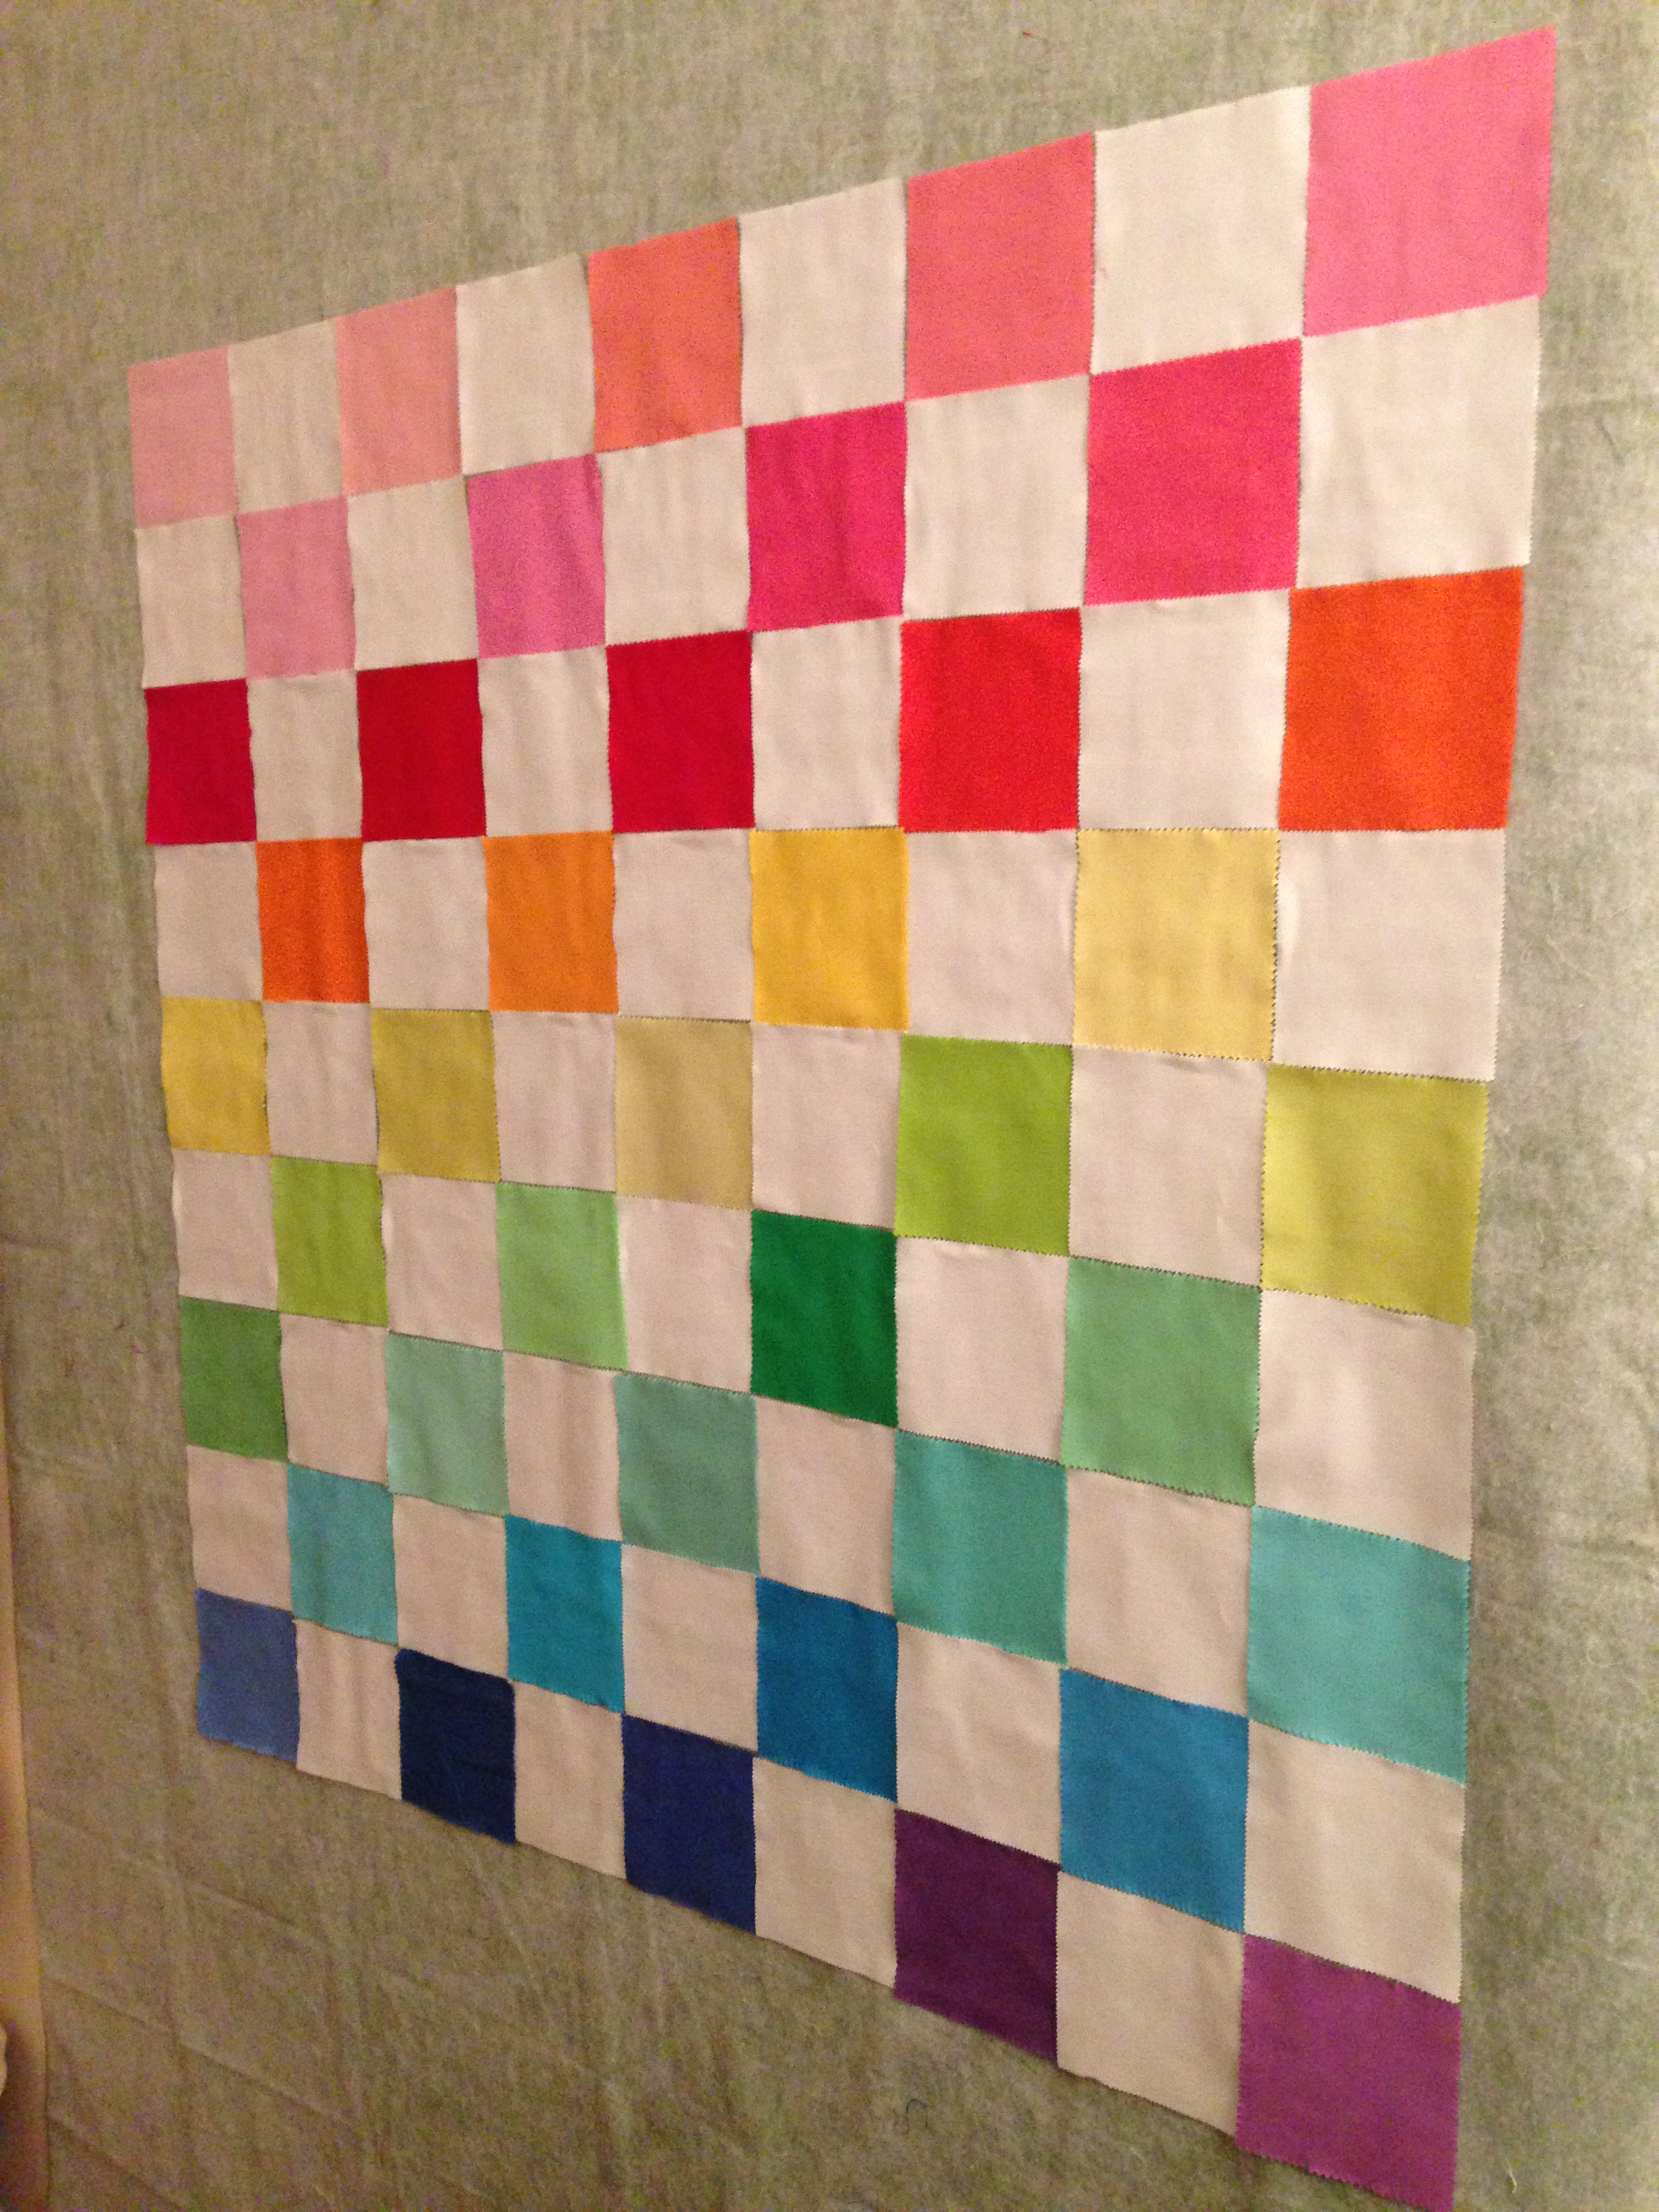 quilt quilts pack charm as sugar aprilshowers the spun post to about begin cherry type this version i